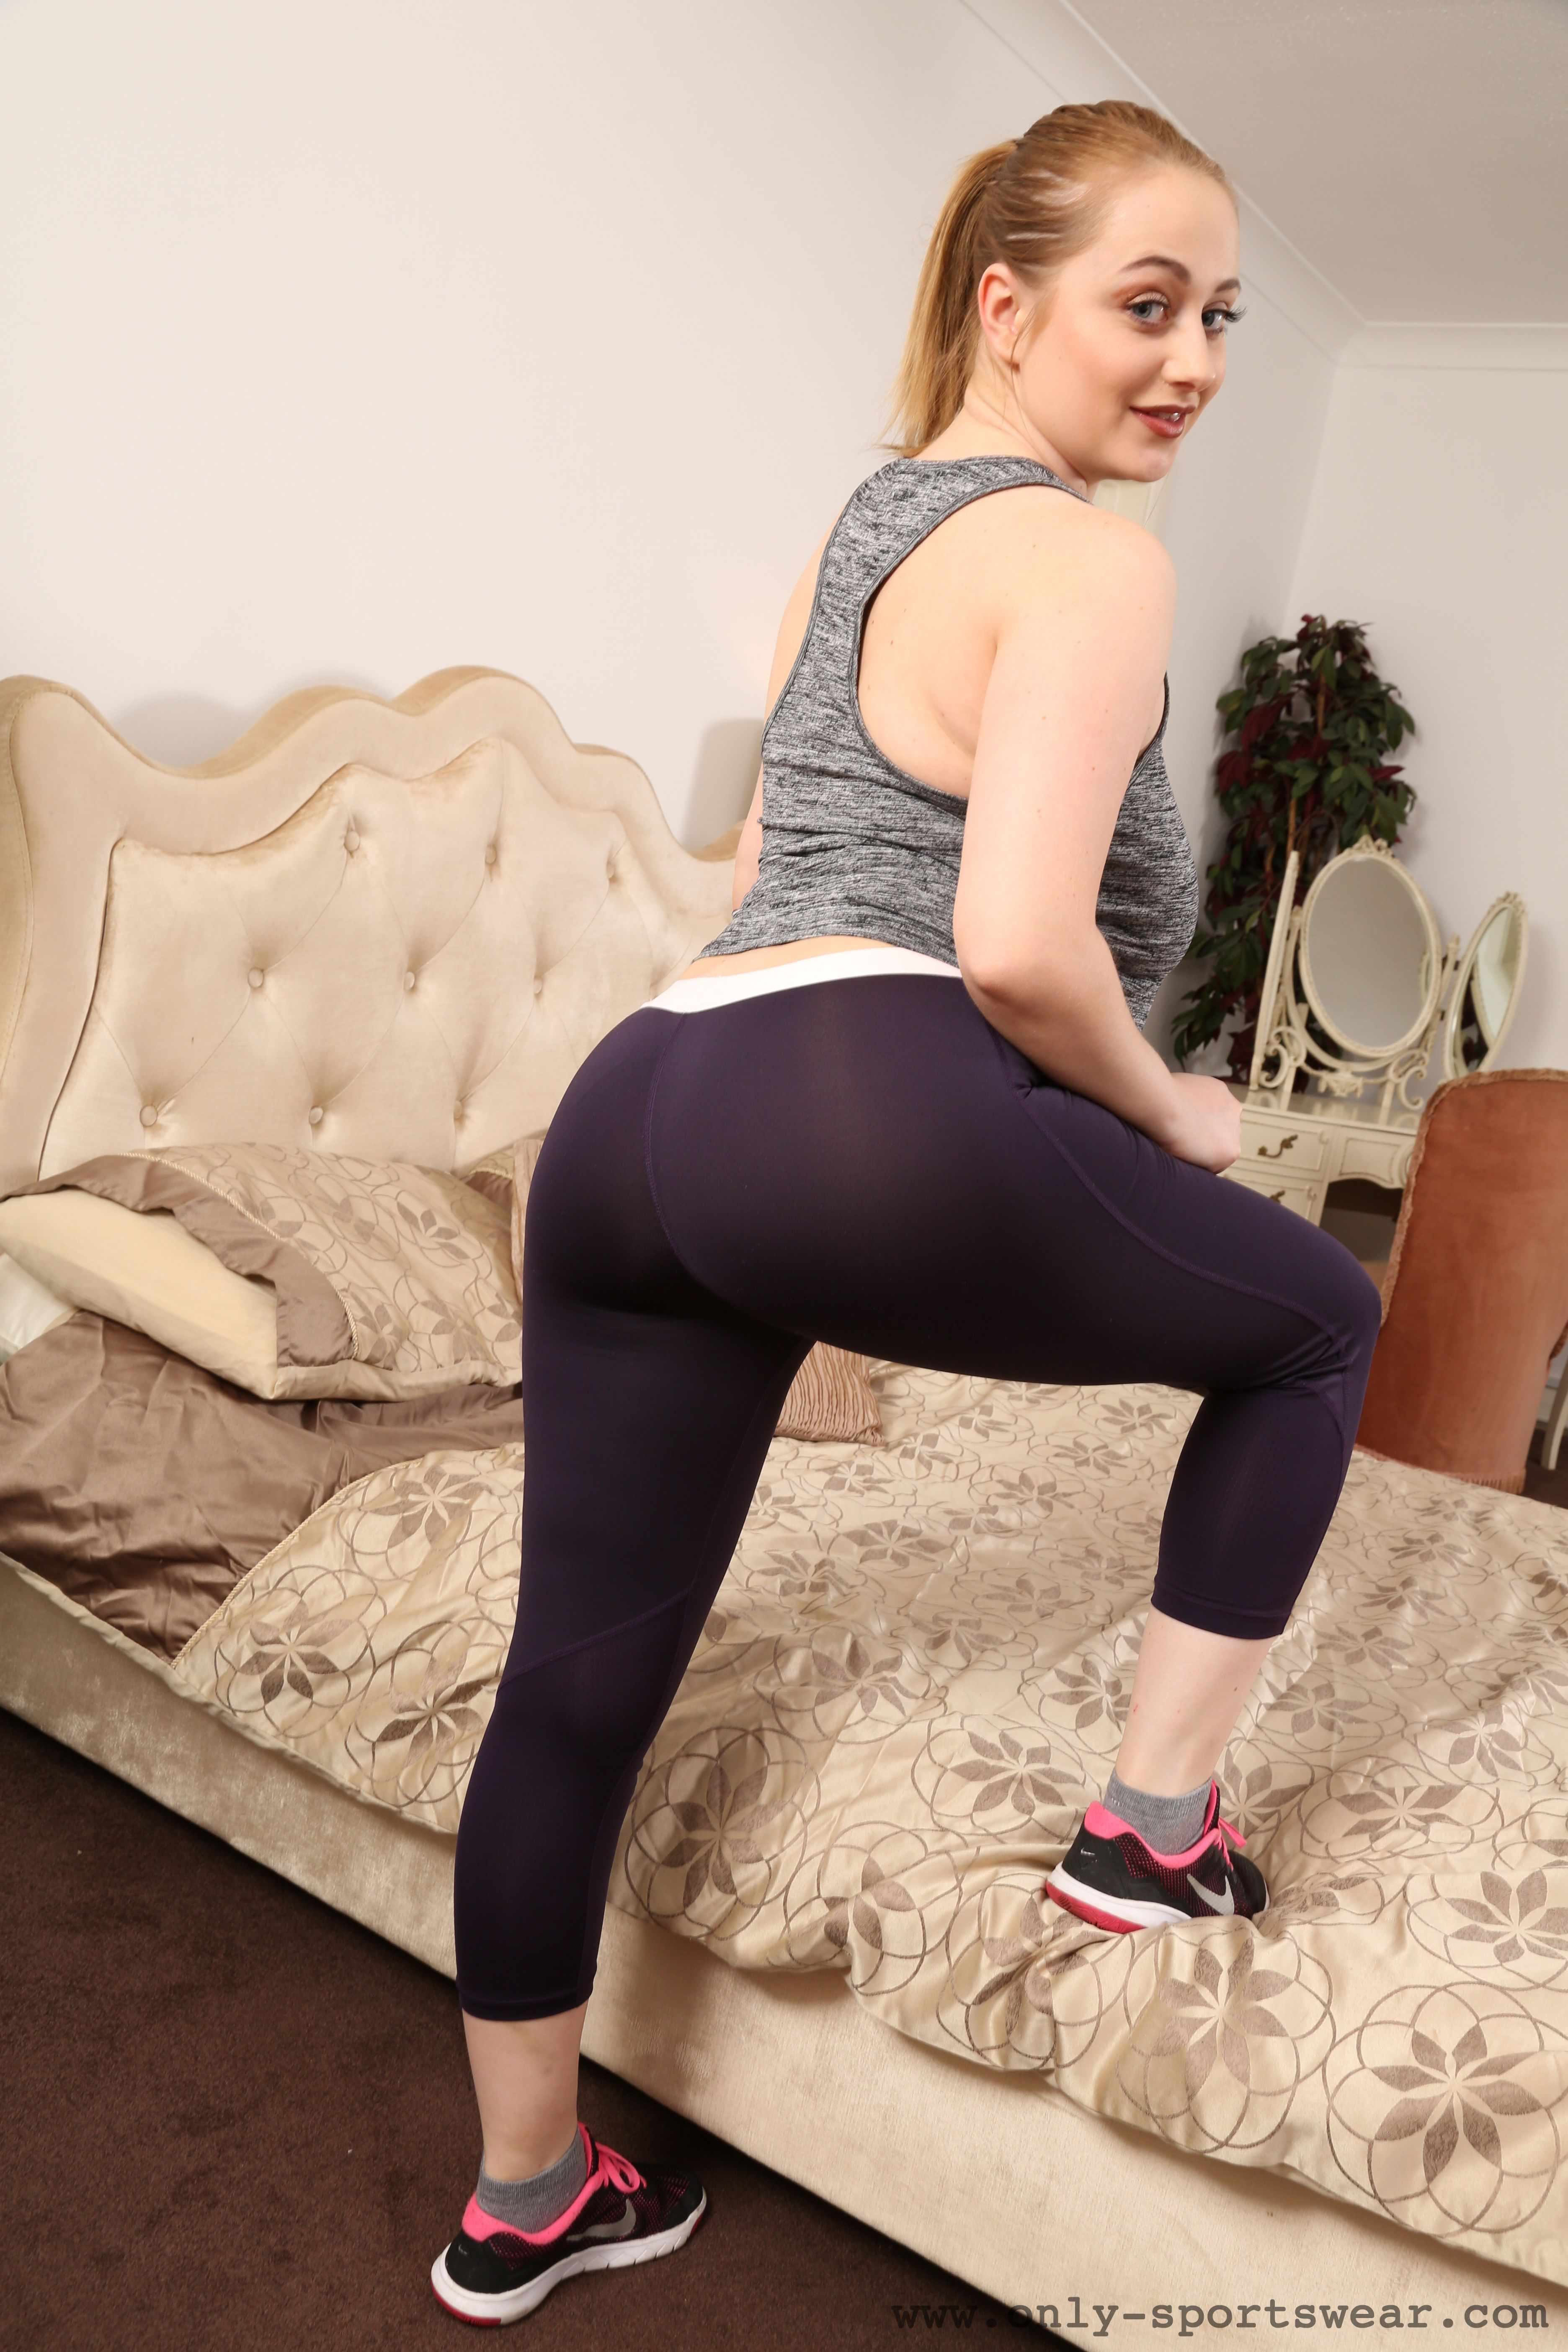 fucking viewing Amazing blonde redhead wma want have sex with